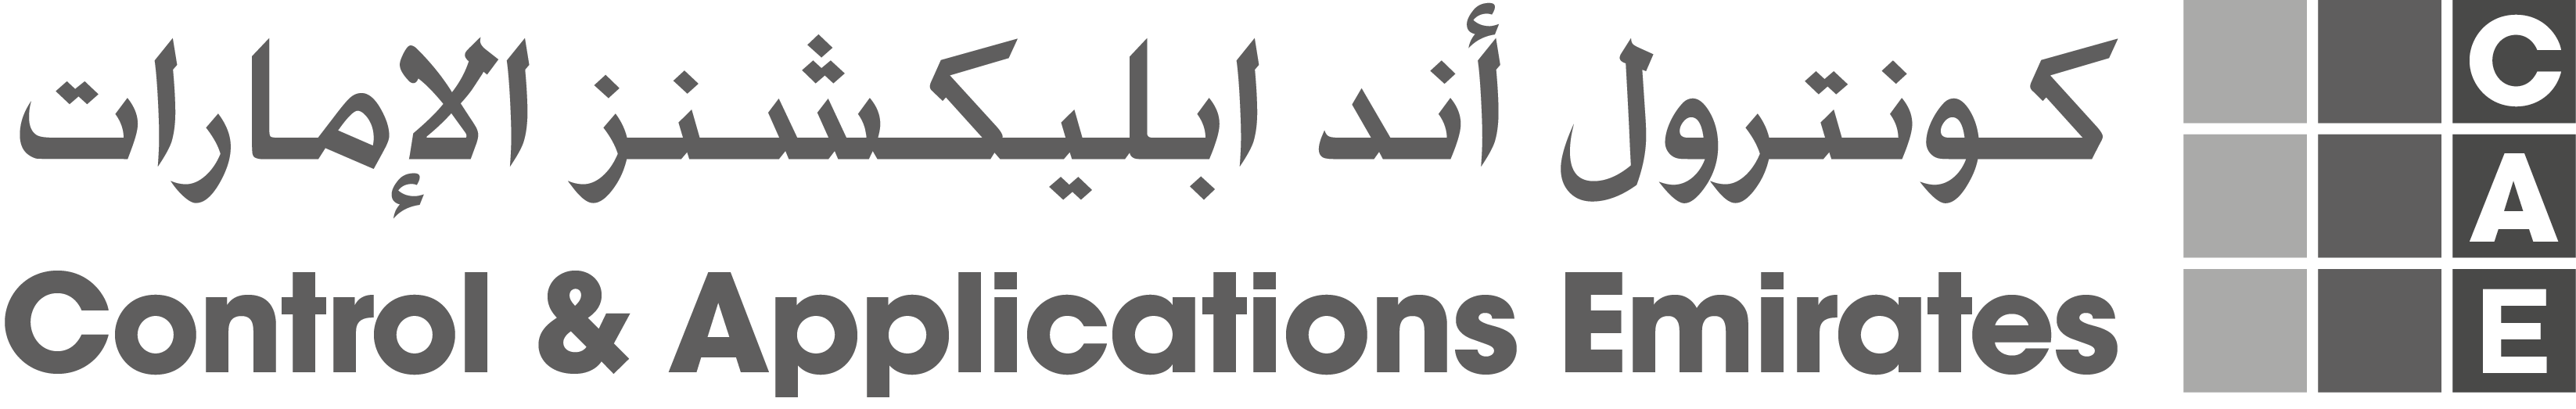 Career - Control & Applications Emirates (CAE)